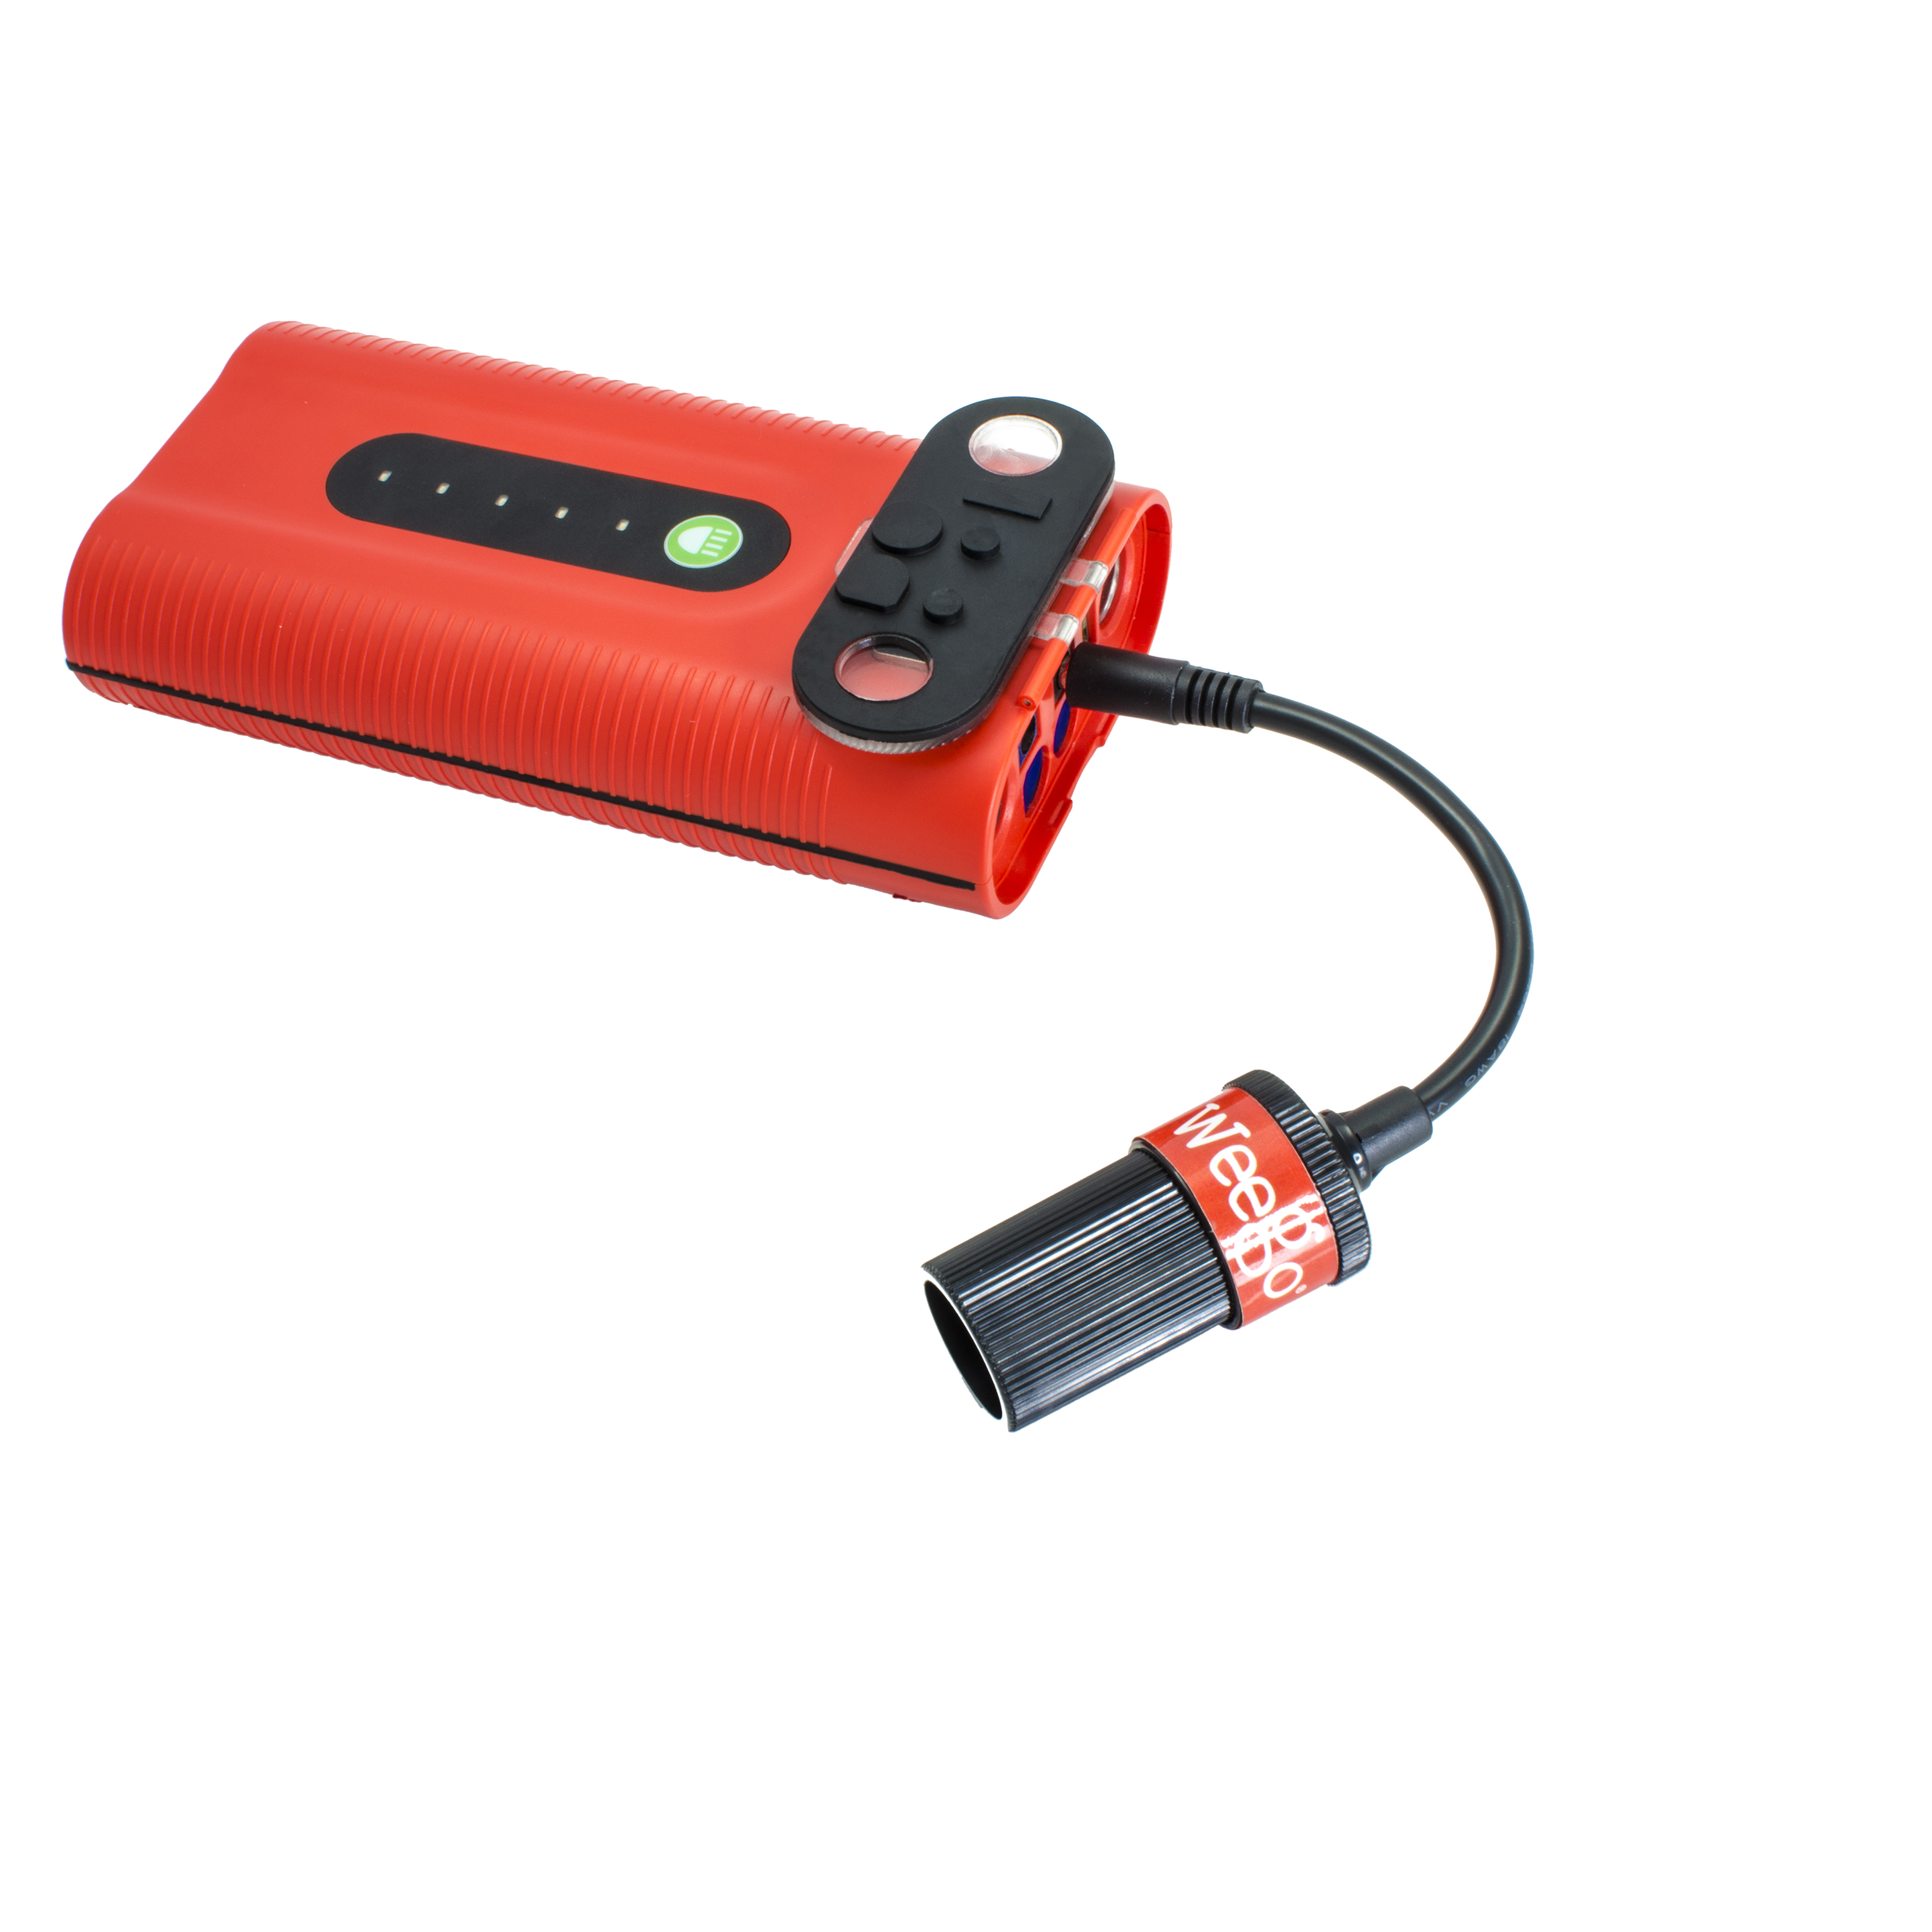 JSFSA Weego Cigarette Lighter Adapter Connects SEA Plug To 12 Volt